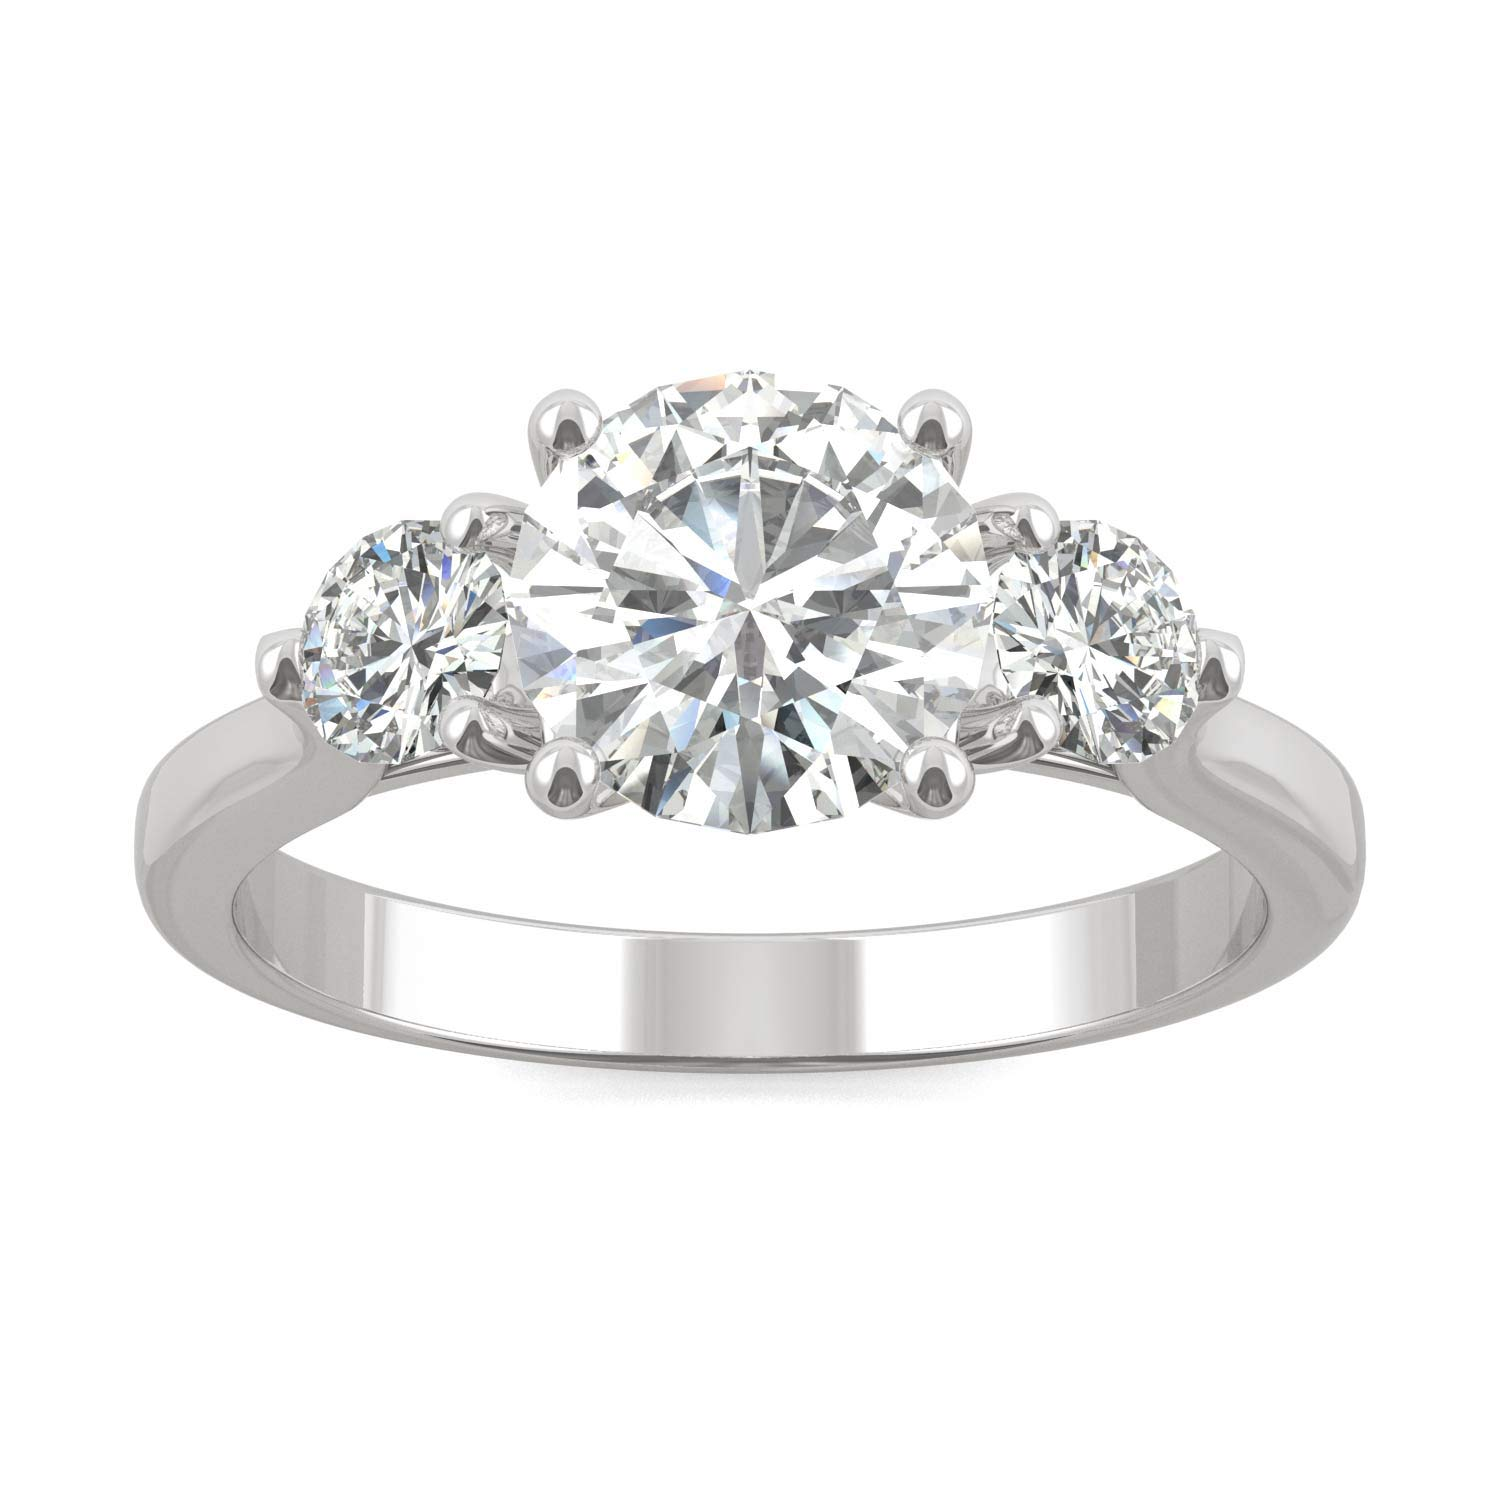 14K White Gold Moissanite by Charles & Colvard 7mm Round Engagement Ring-size 6, 1.52cttw DEW